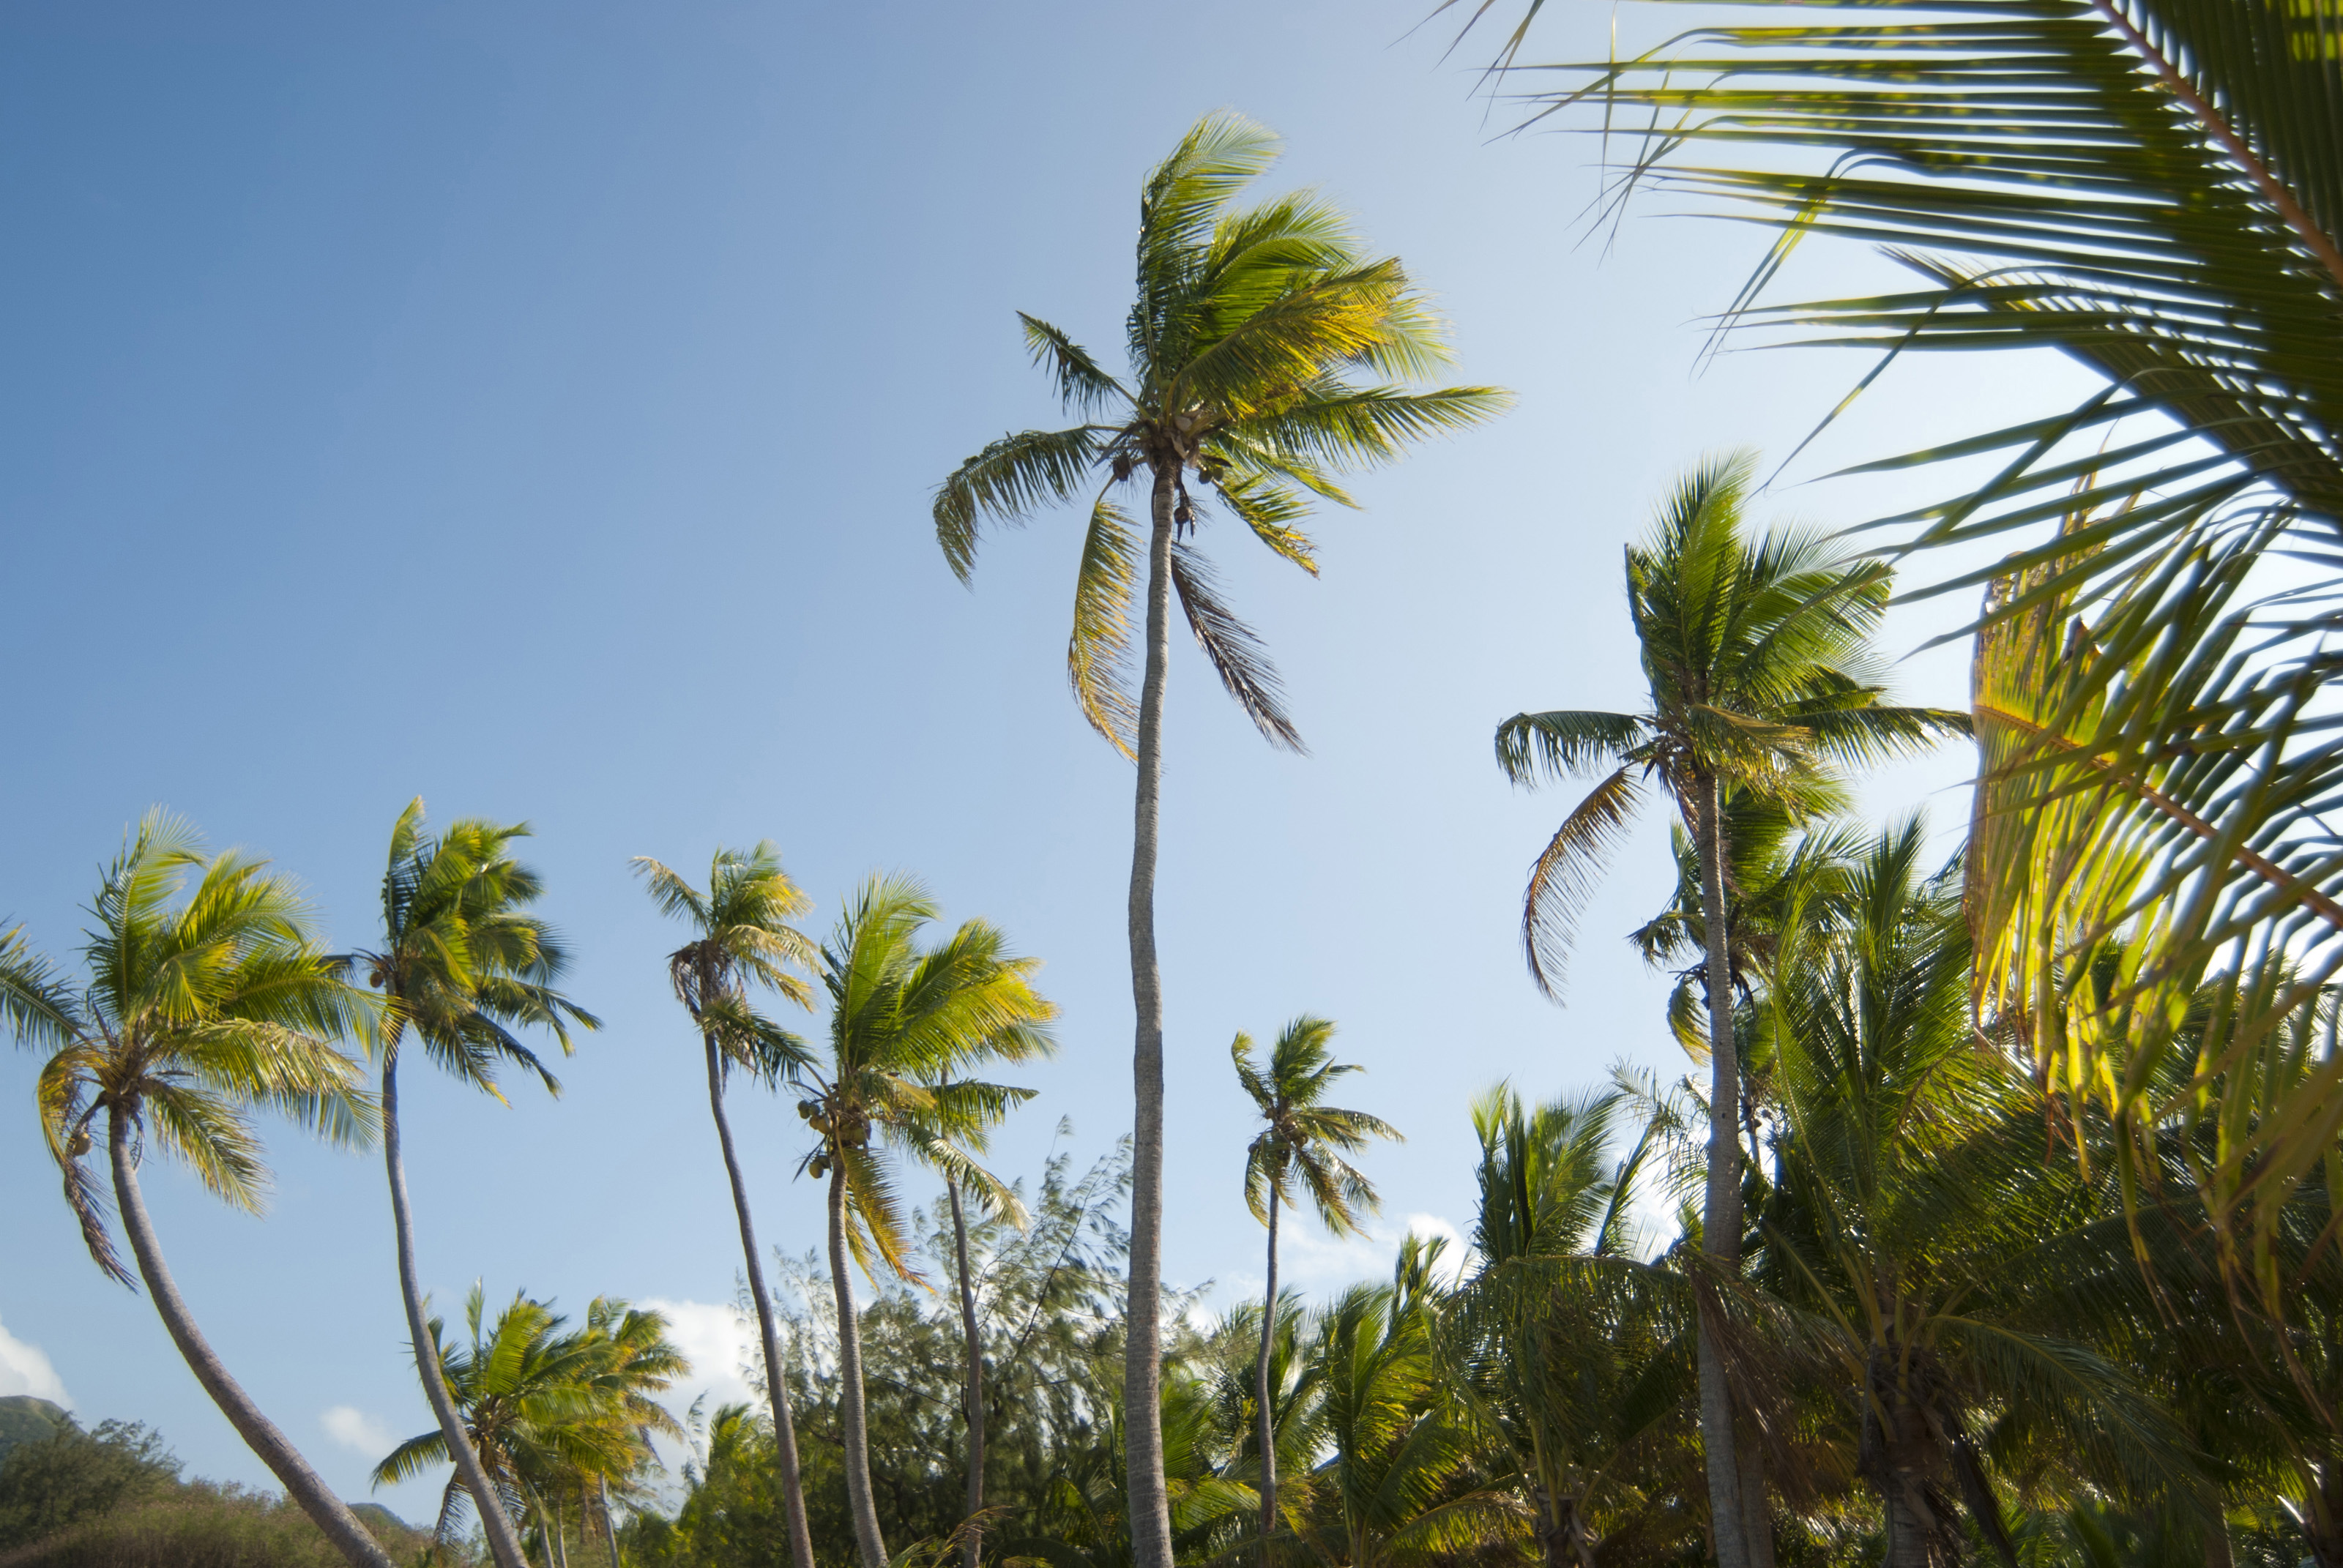 Grove Of Tall Palm Trees 6000 Stockarch Free Stock Photos